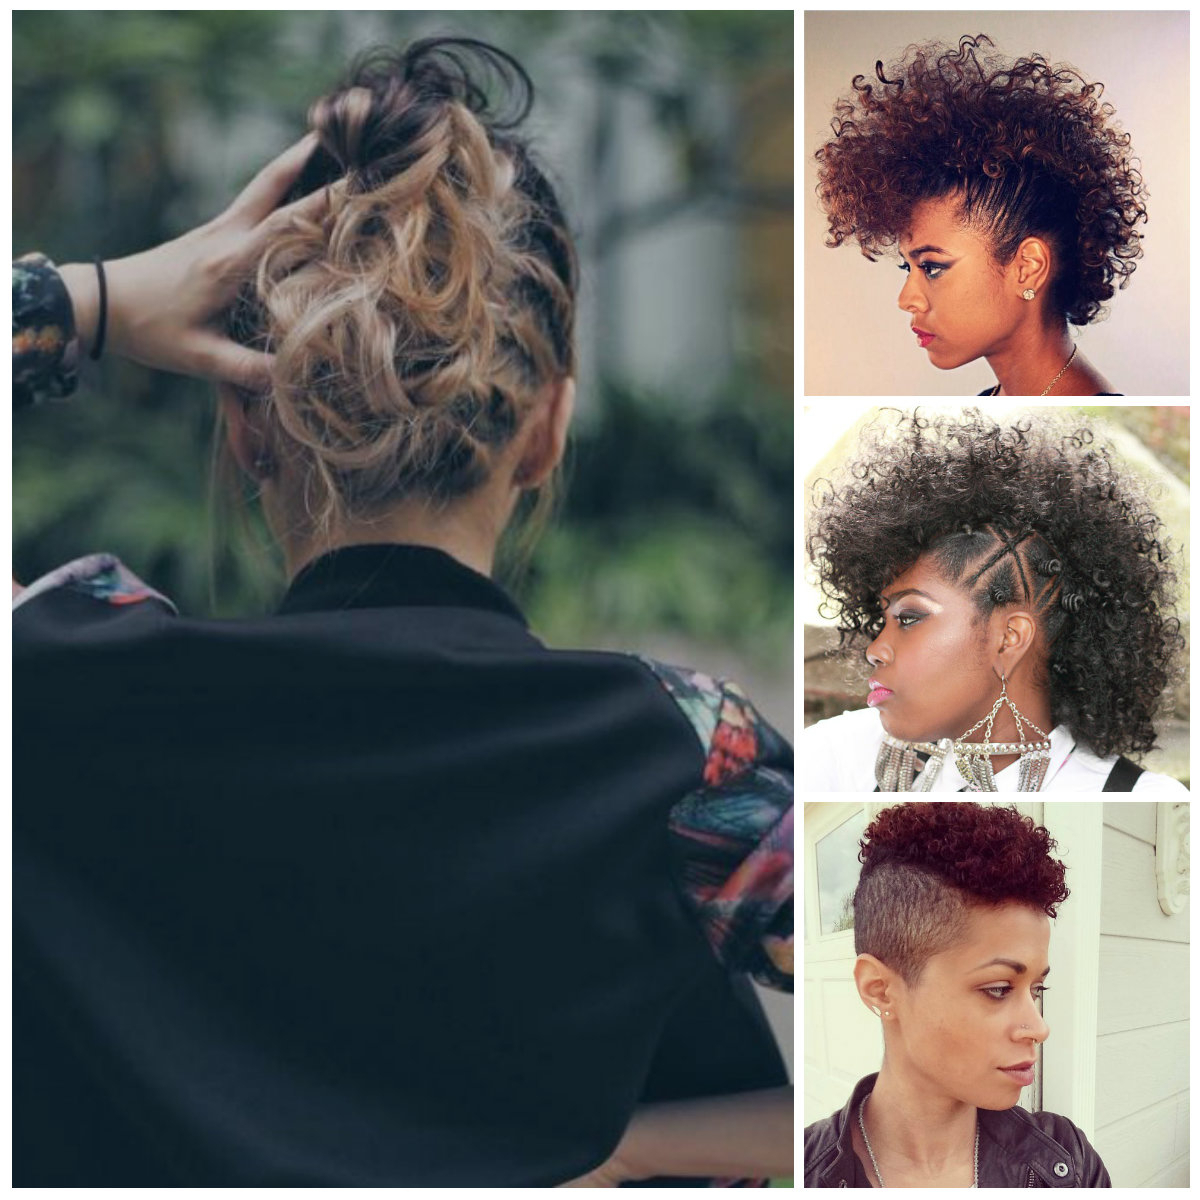 2019 Haircuts Regarding 2020 Chic And Curly Mohawk Haircuts (View 4 of 20)